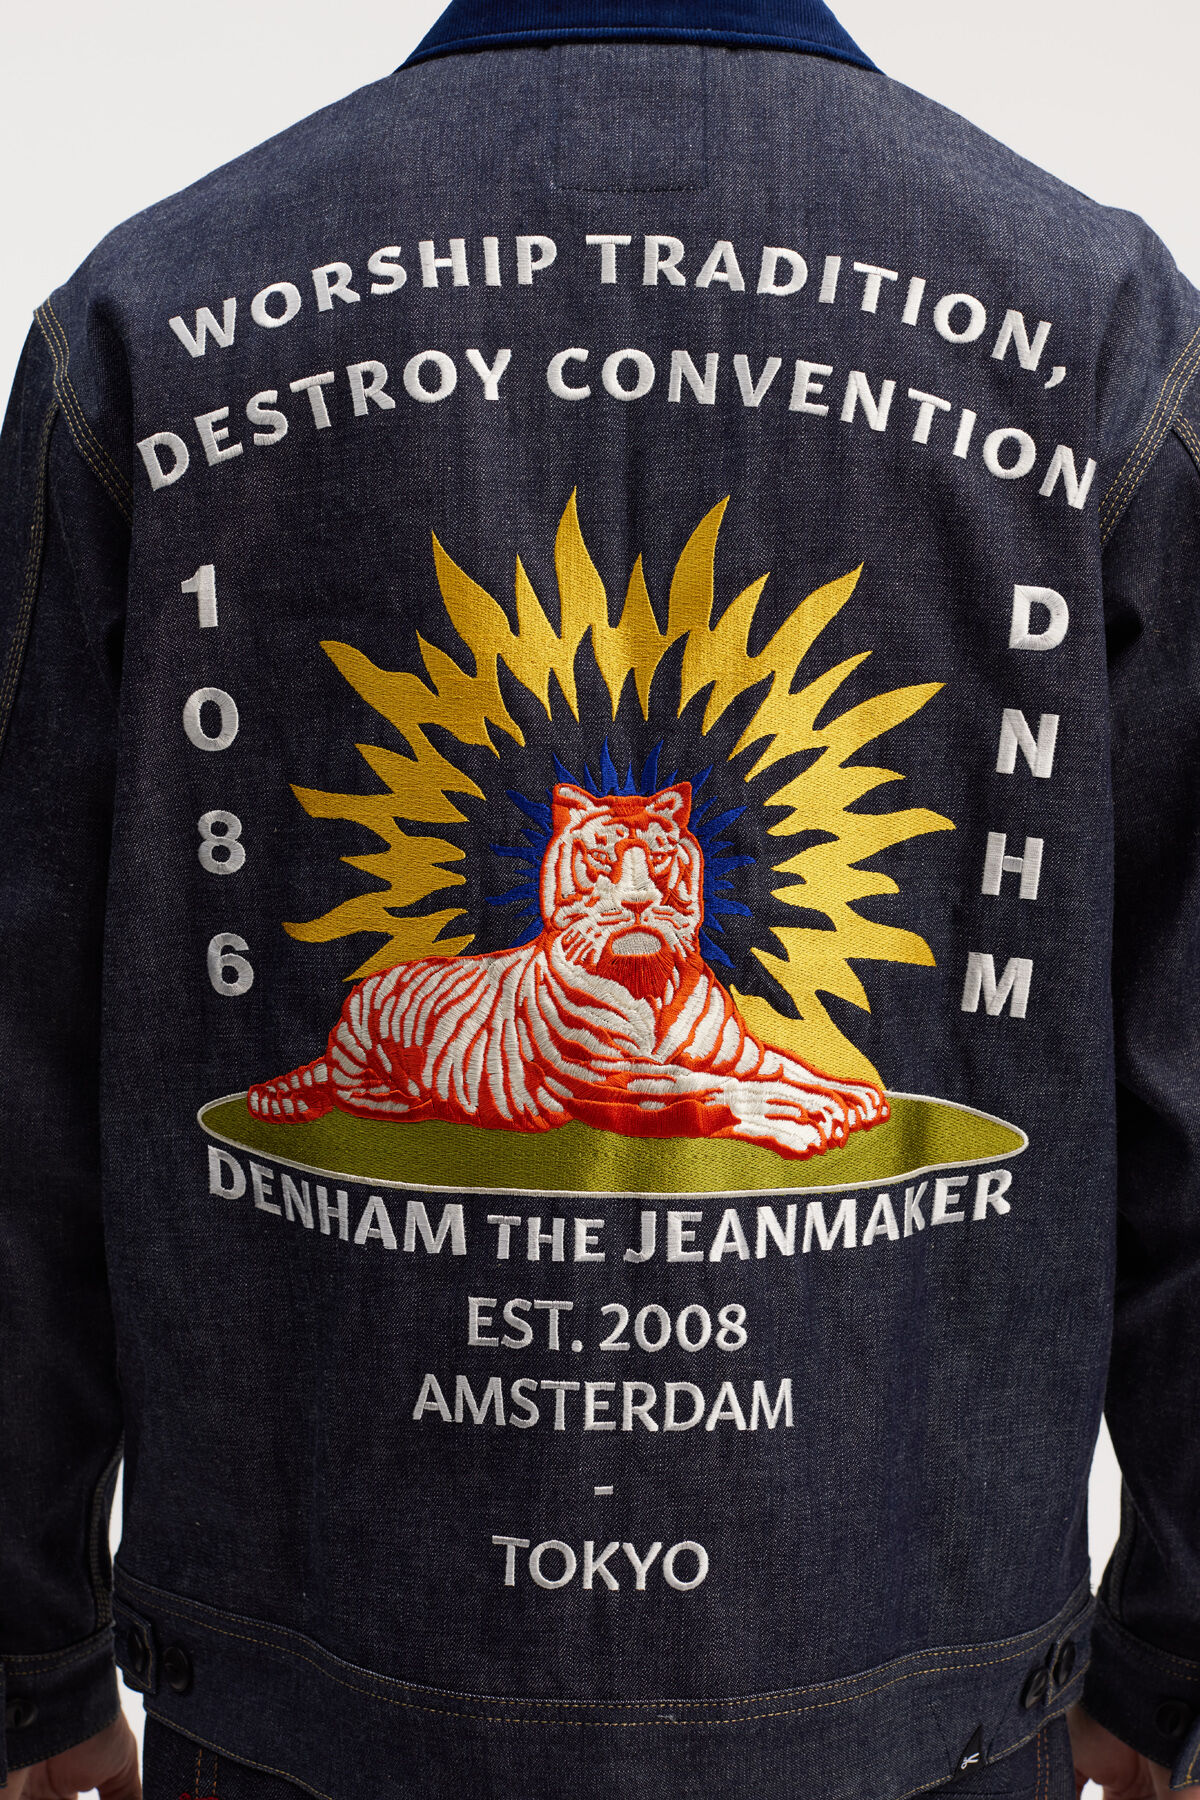 Y.O.T. DENIM JACKET Authentic Tiger Embroidery - Japanese Capsule Collection